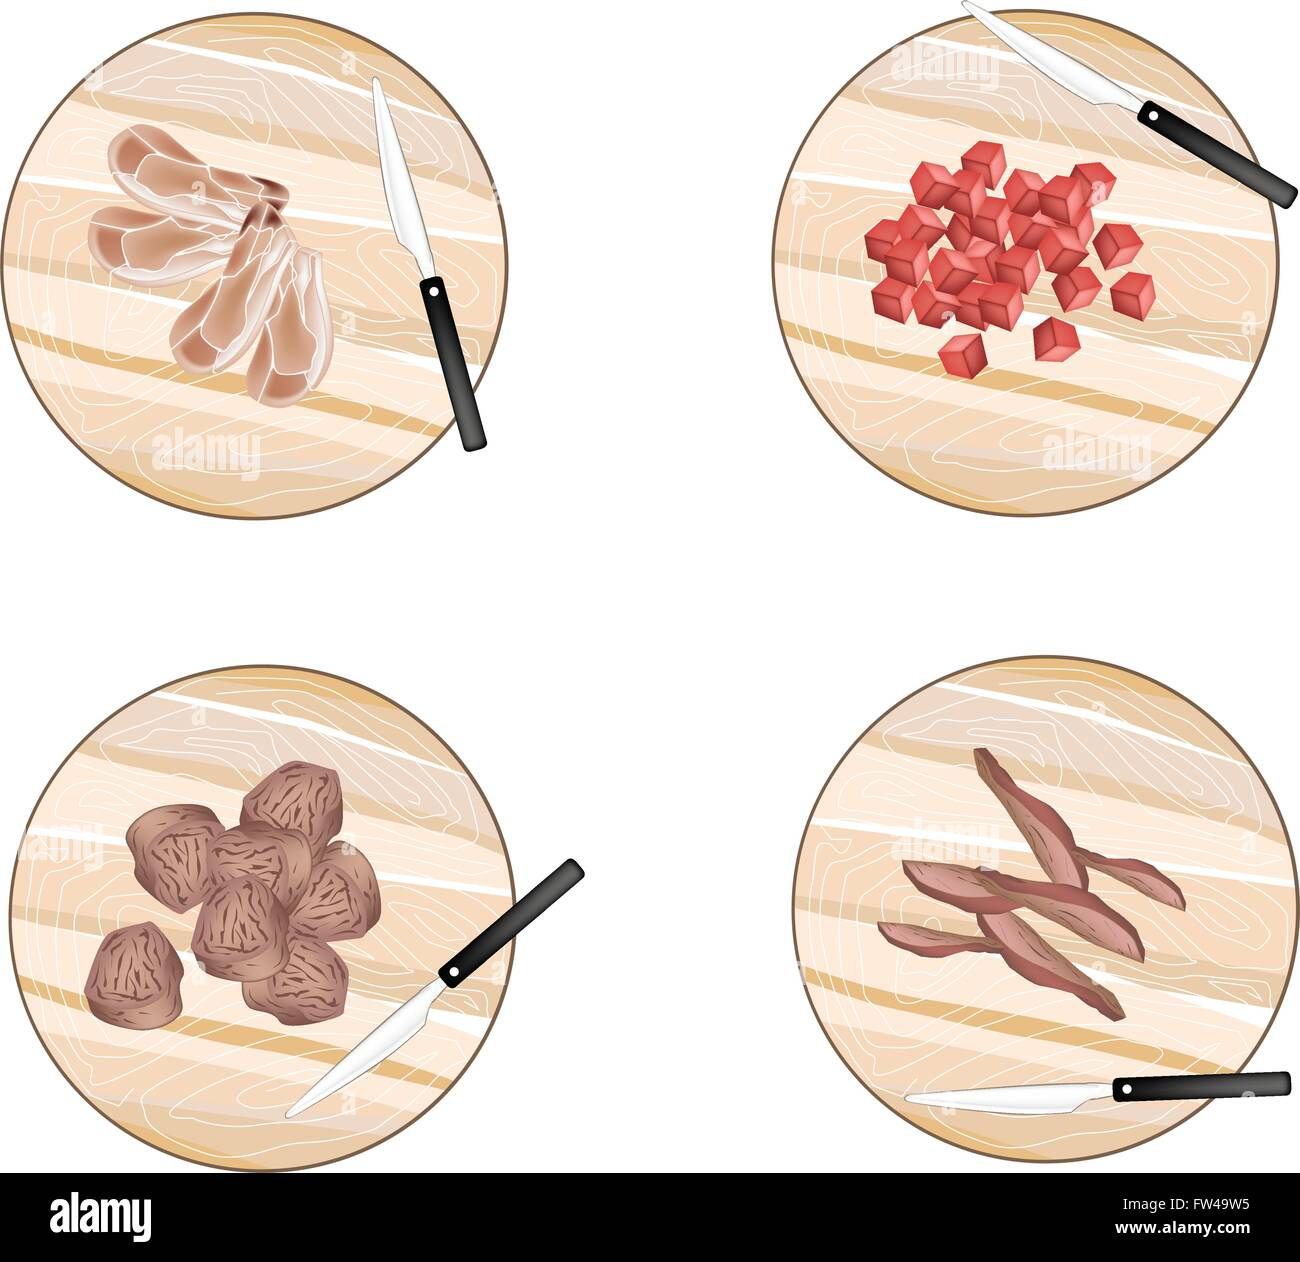 Different Types Of Cutting Boards Cuisine And Food Different Types Of Raw Meat On Wooden